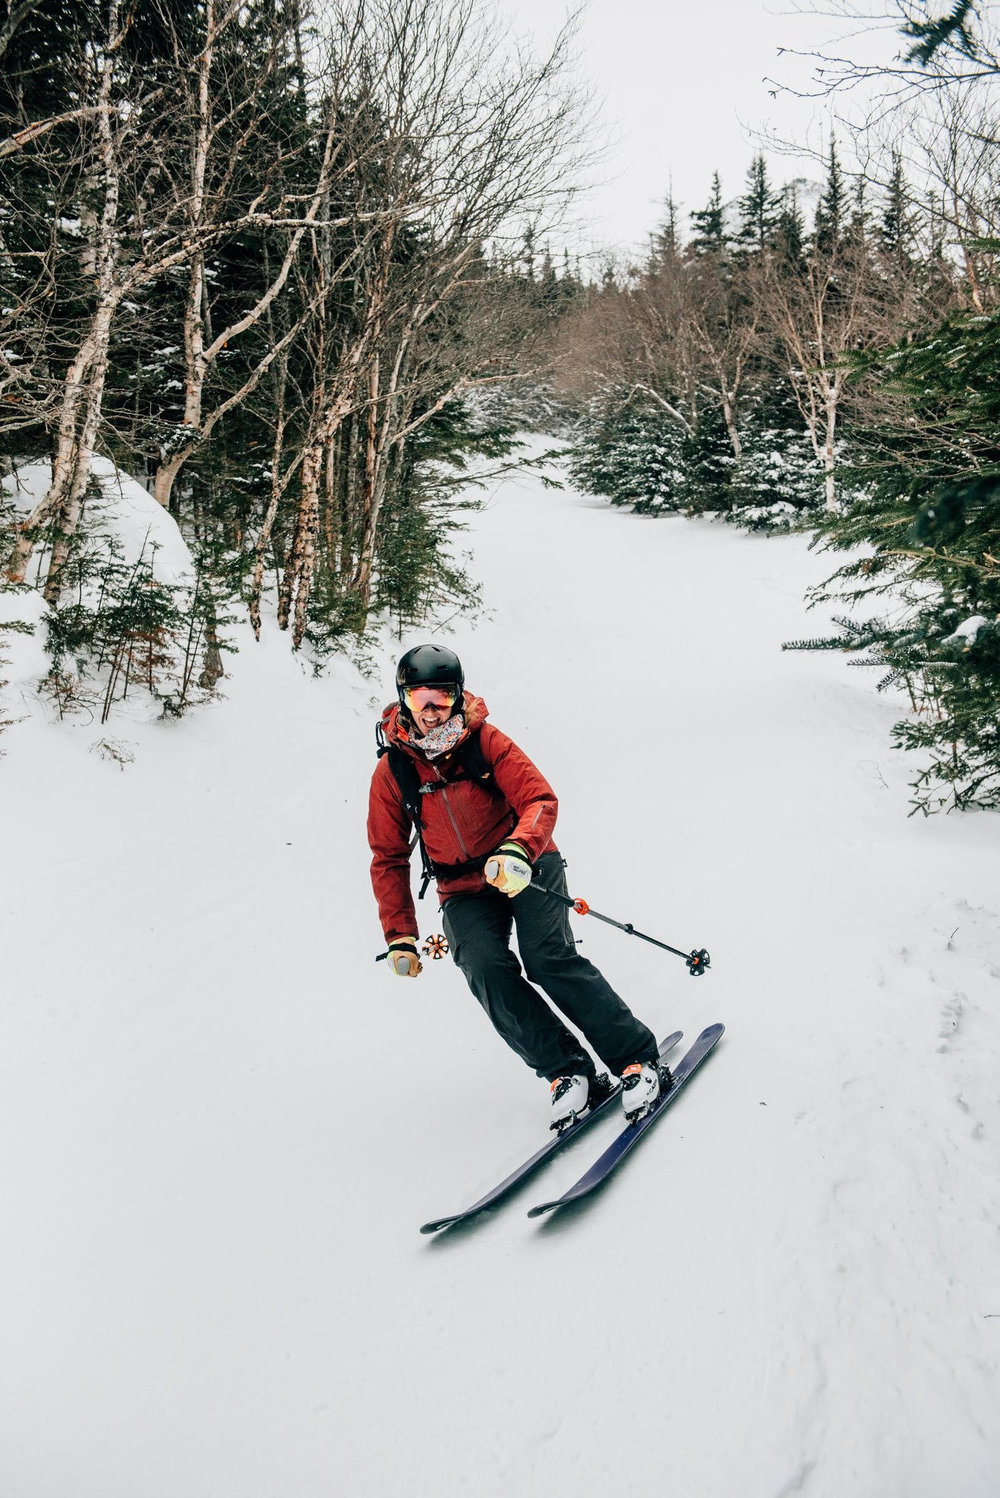 Abby King has been teaching backcountry skiing courses in the White Mountains